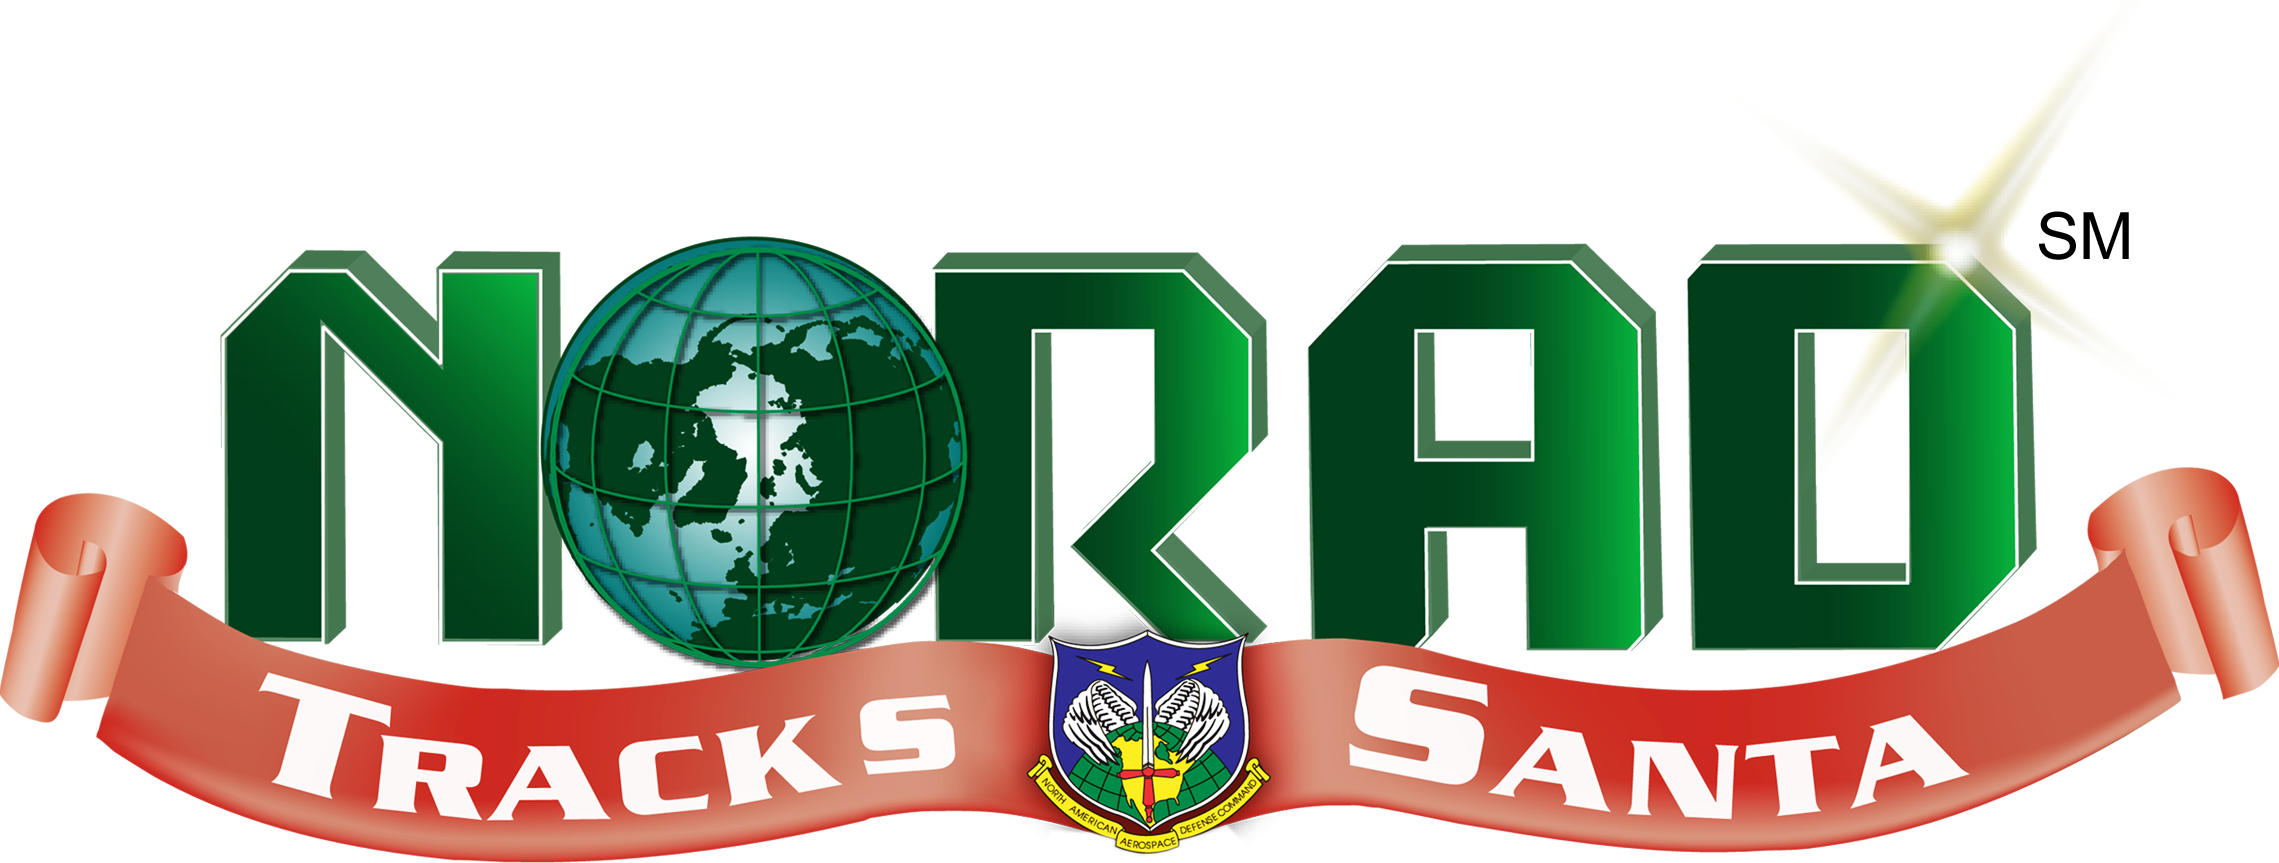 NORAD Tracks Santa - Downloads - NORAD Tracks Santa Wiki